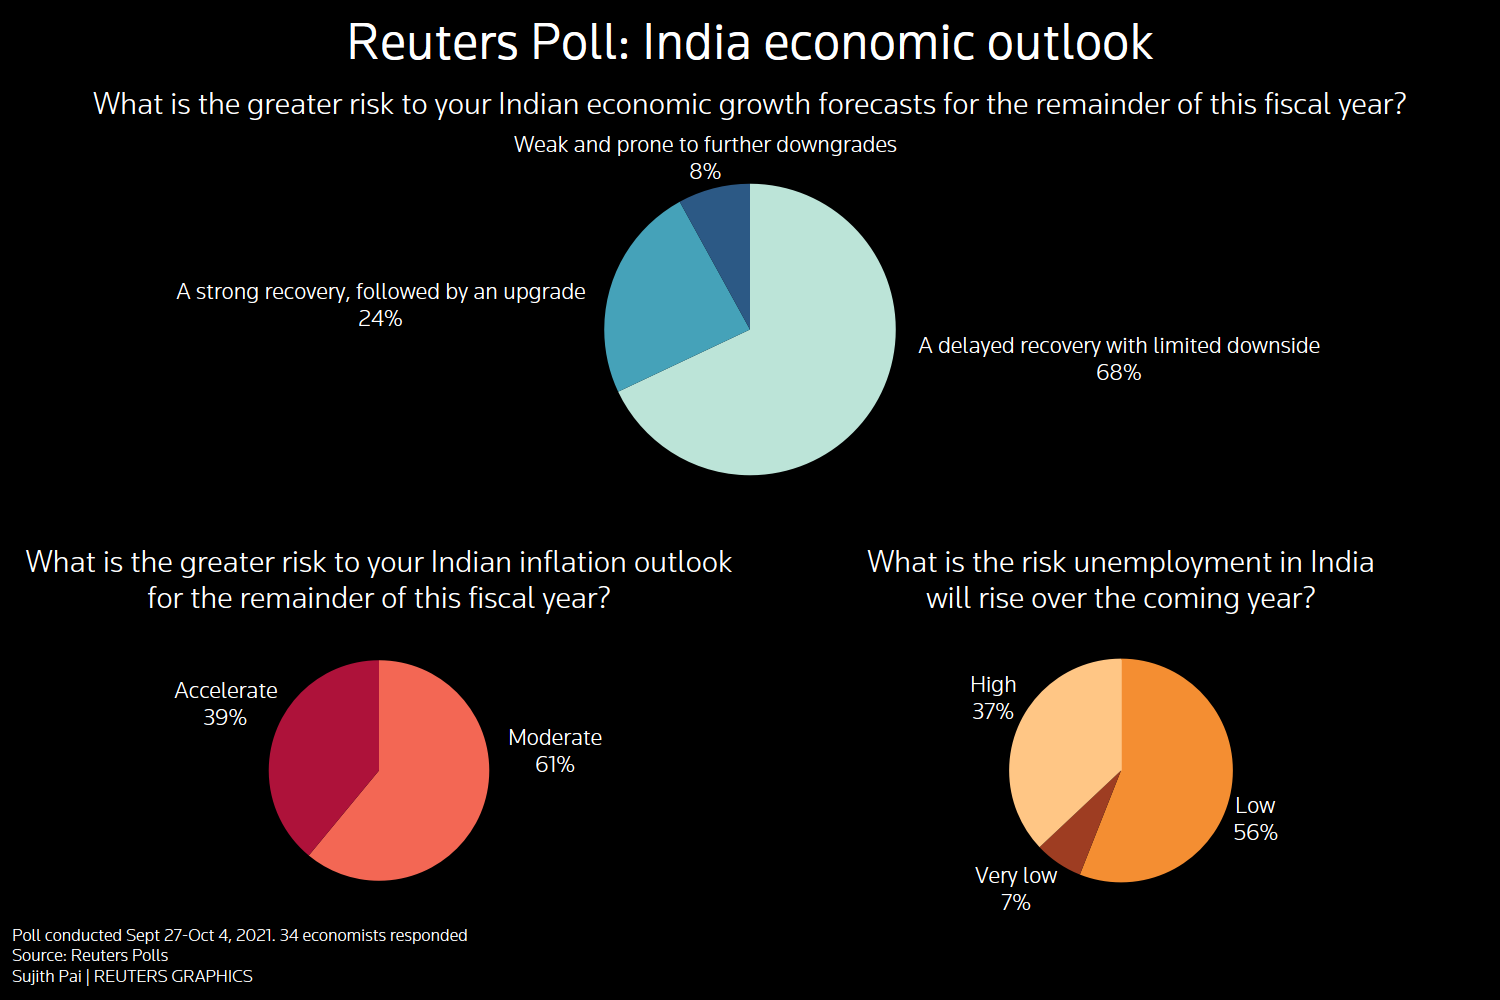 Reuters poll graphic on India economic outlook: